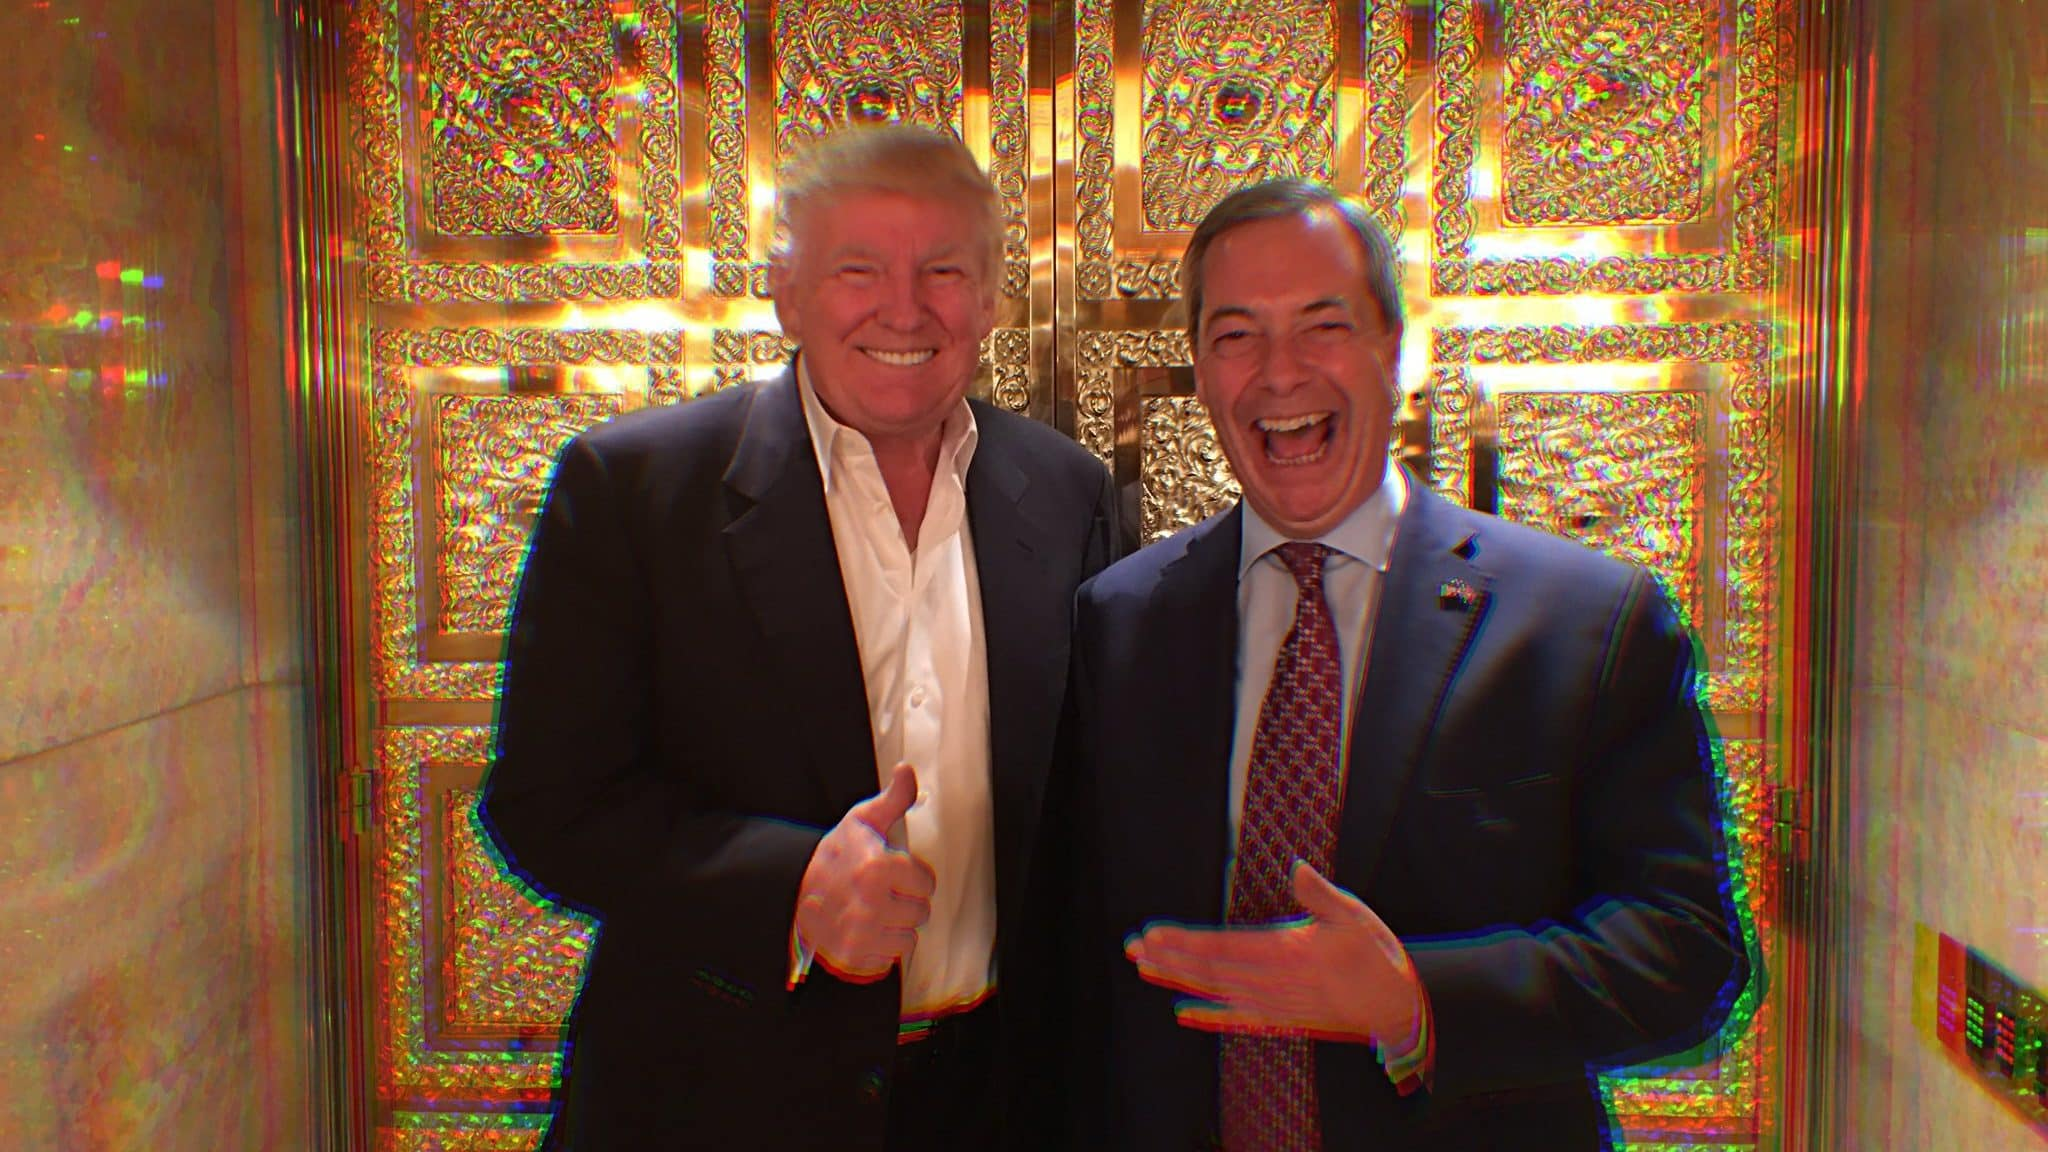 b4988d1aea861 Trump Should Know: Farage is His Only UK Ally. | Human Events